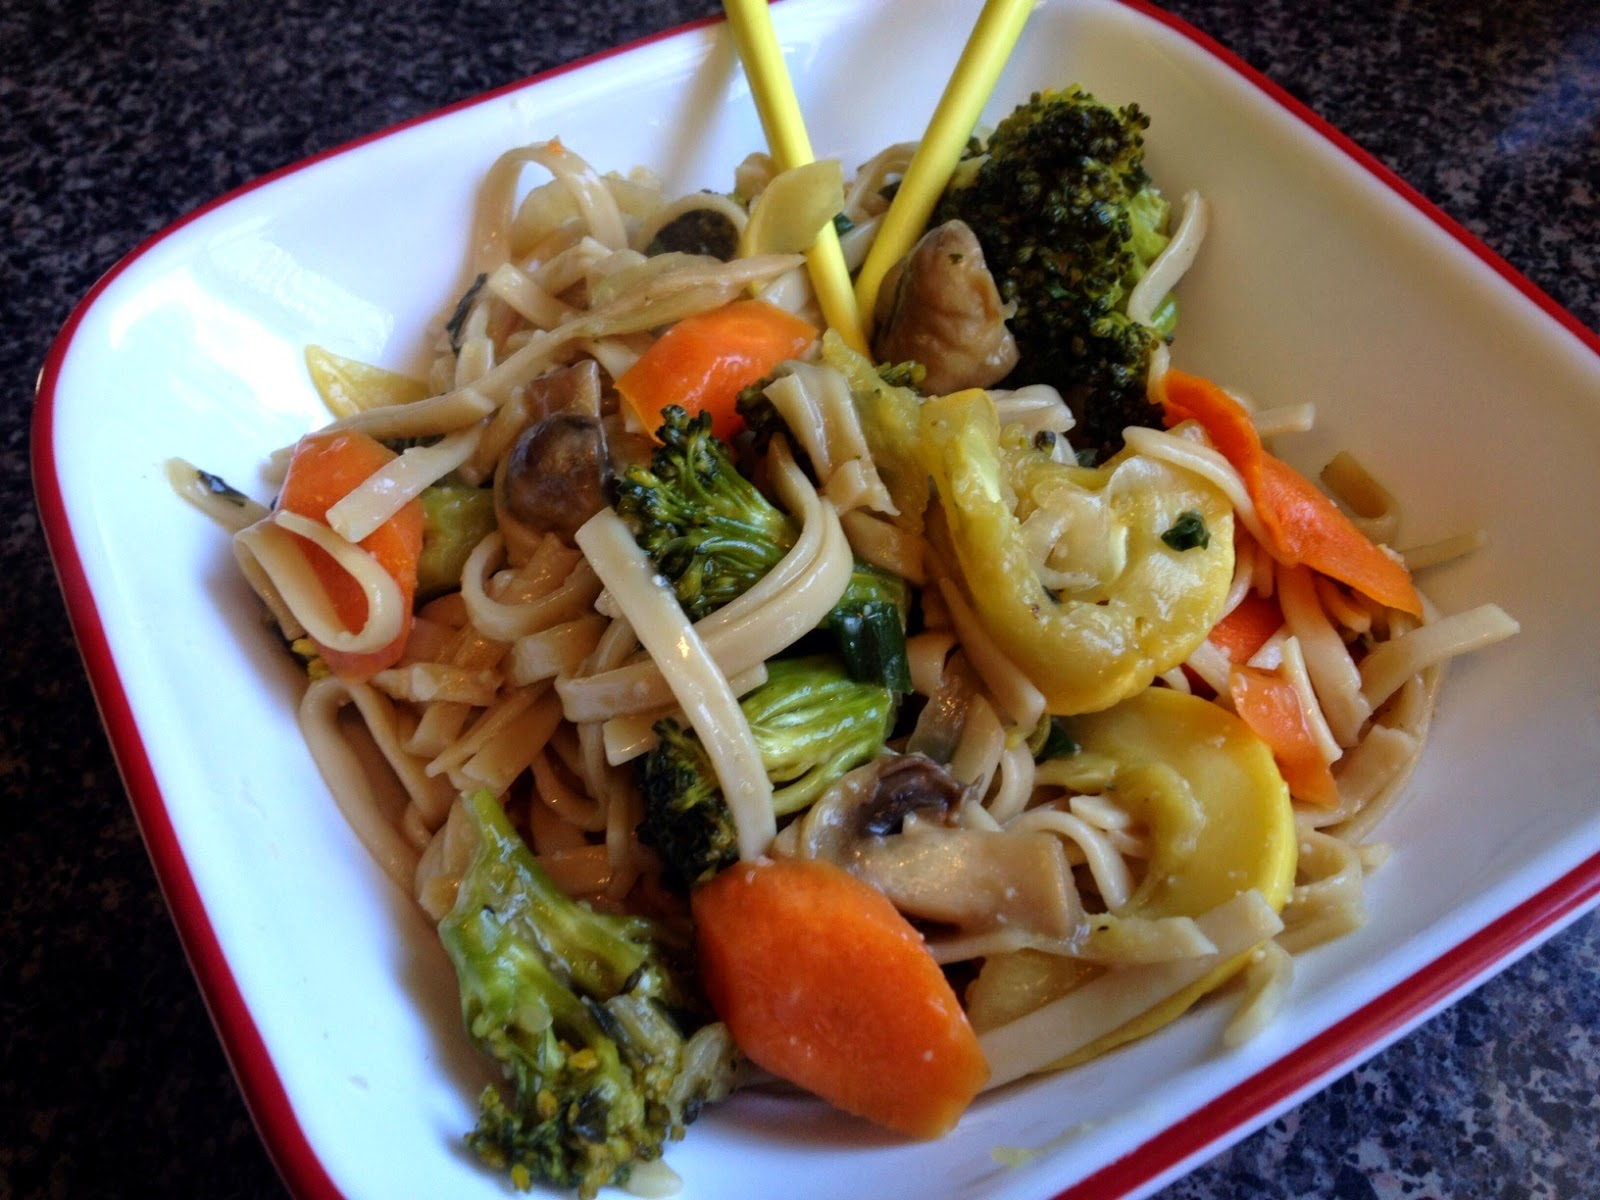 Vegan crunk vegan lo mein noodles im planning to save the recipe for my next cookbook which will be a look at veganized food trends through the past decades the history of chinese food in forumfinder Images